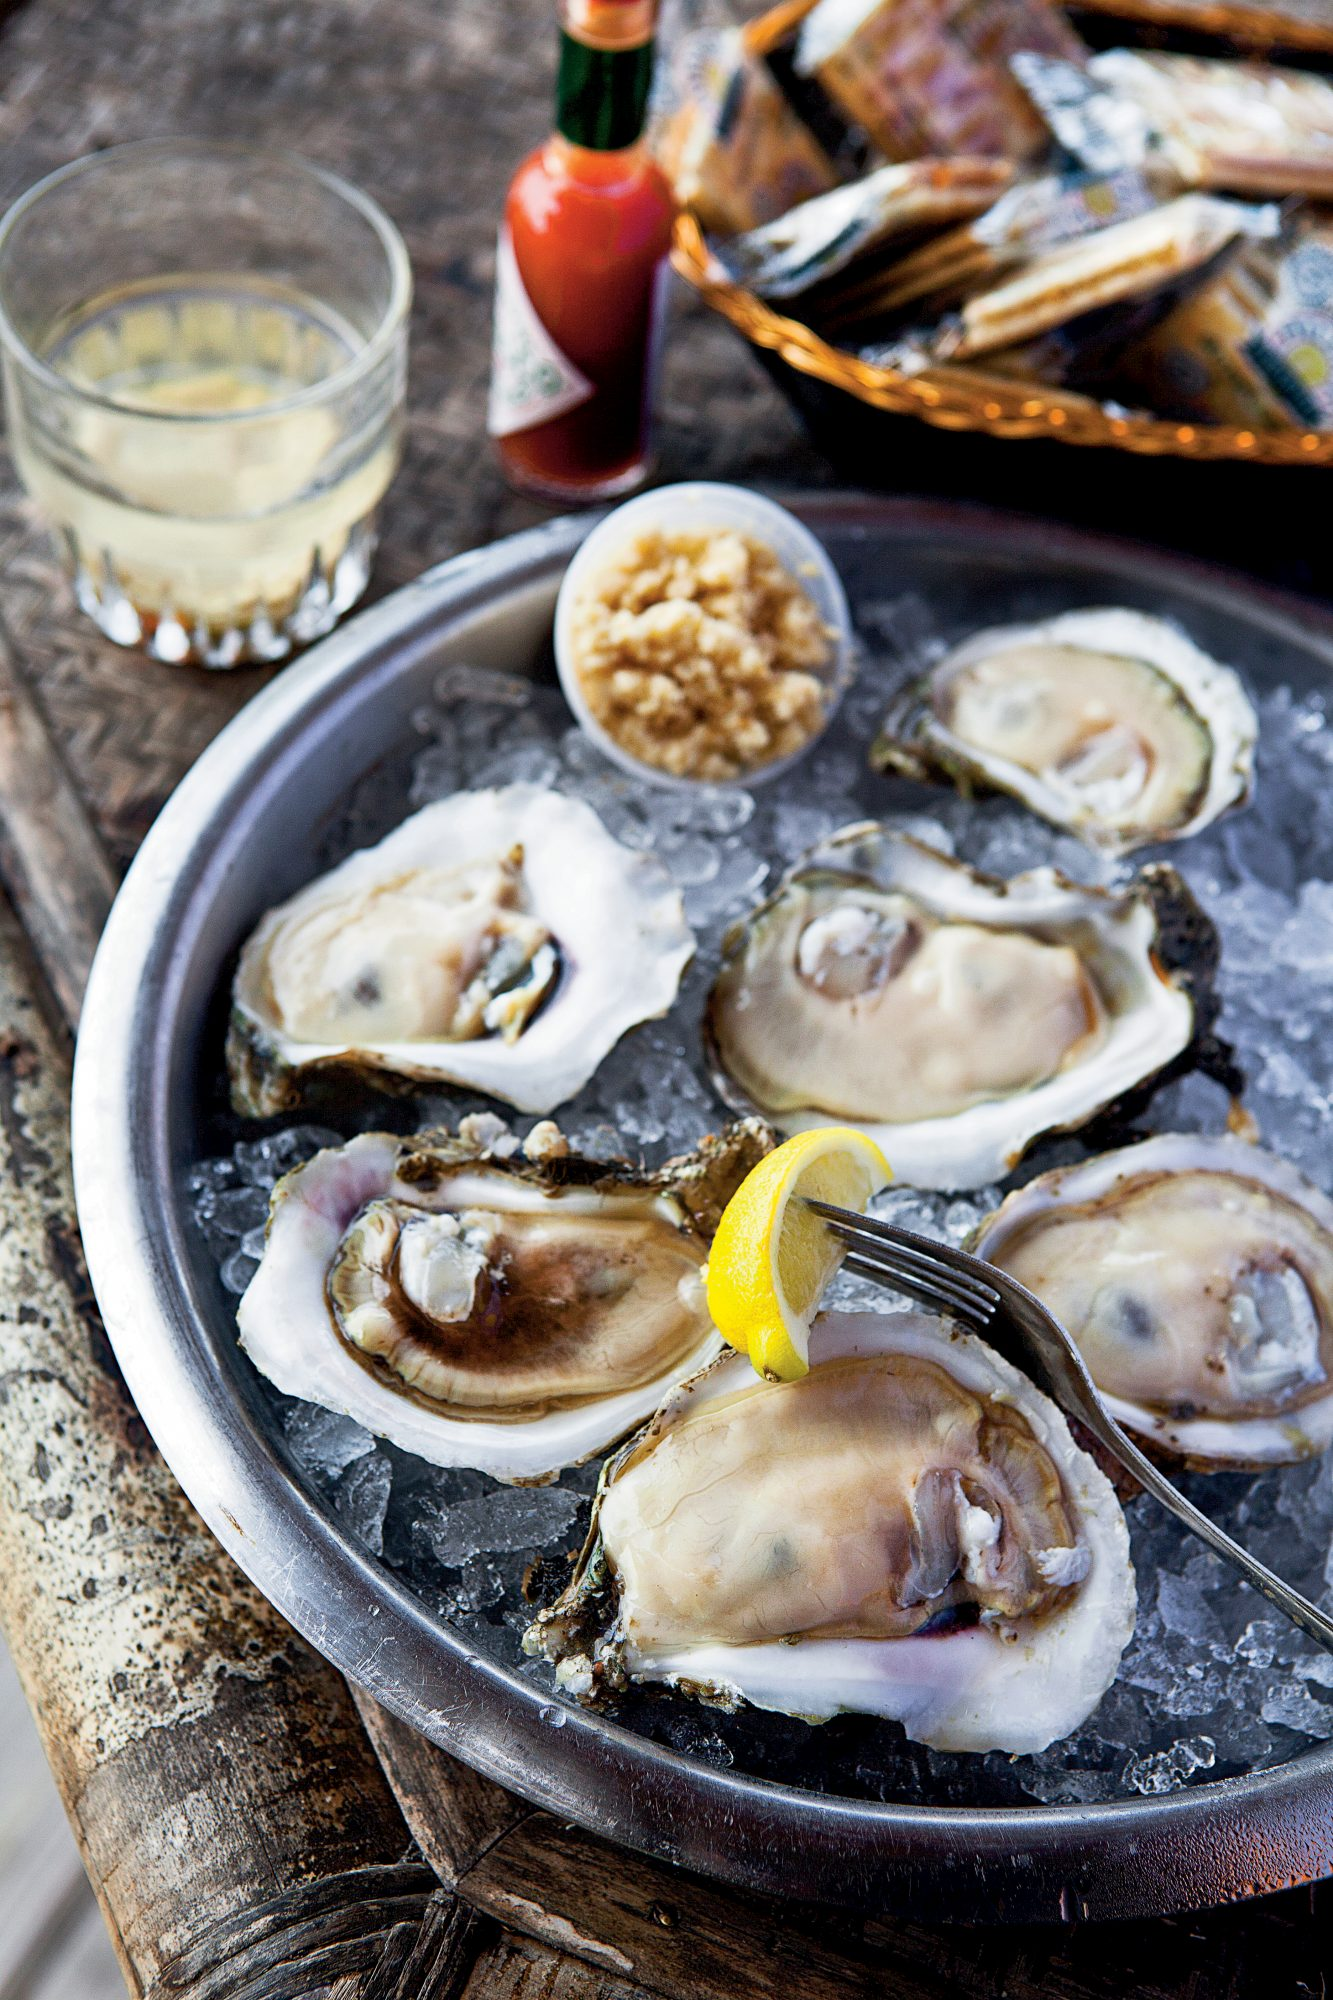 Boss Oyster in Appalachicola is a classic Florida dive, with open-air rooms on pilings above the water, specializes in baked oysters with creative toppings; 850-653-9364